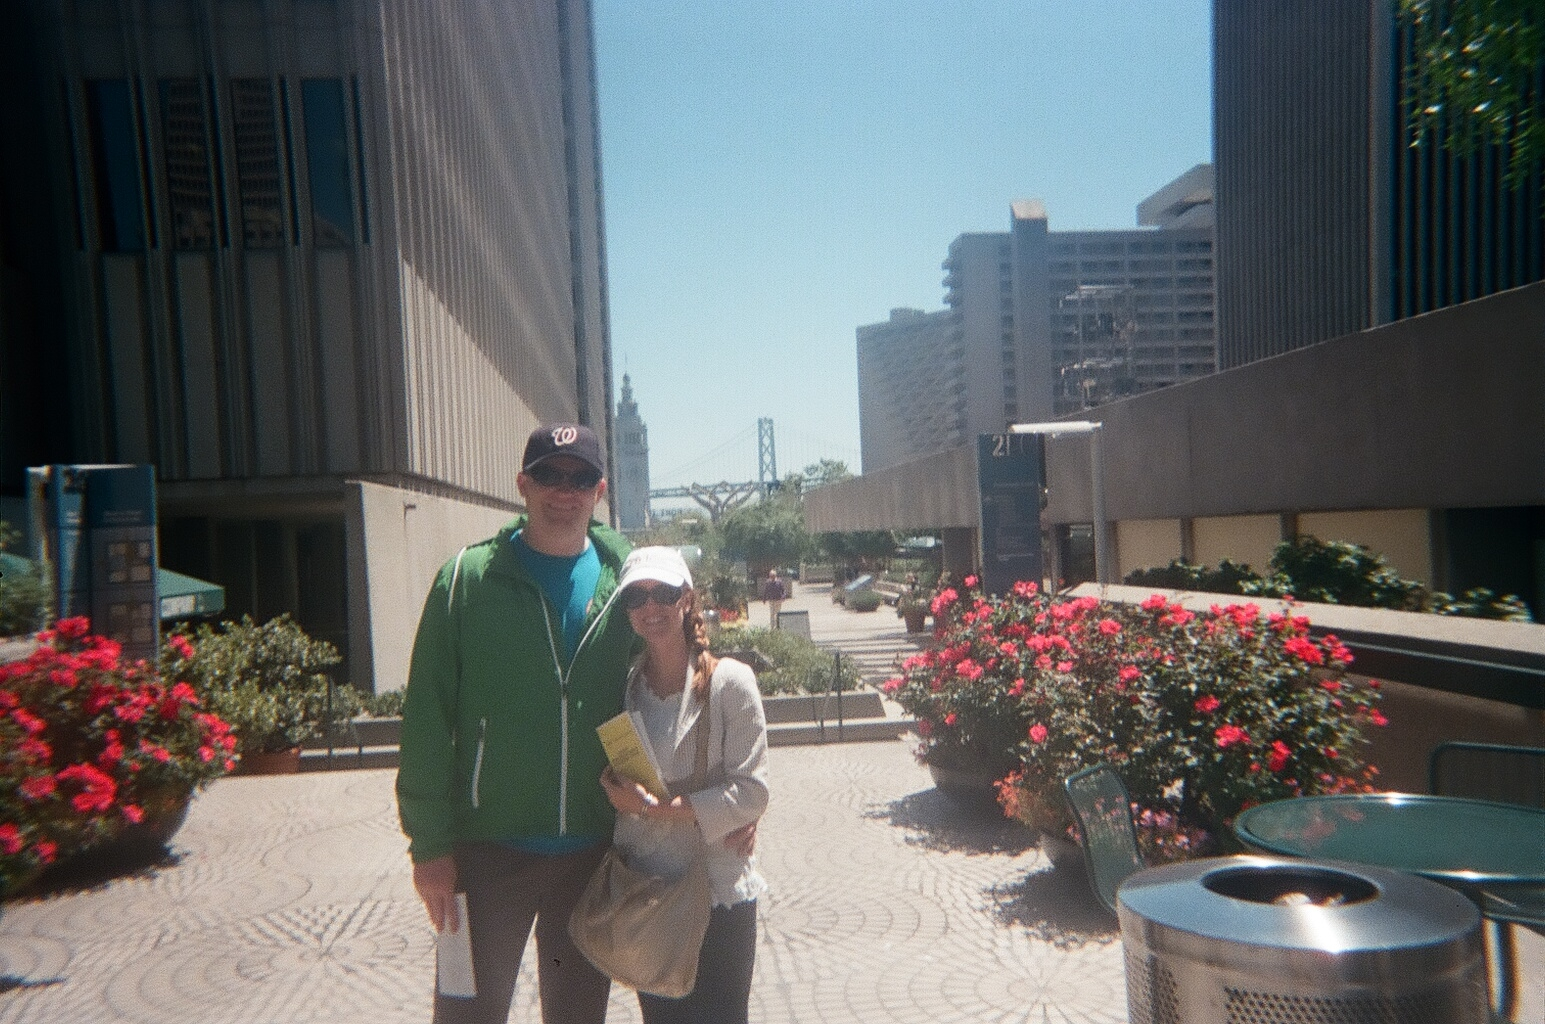 Paul and Morgan-Embarcadero-Tour 7-20-12.JPG